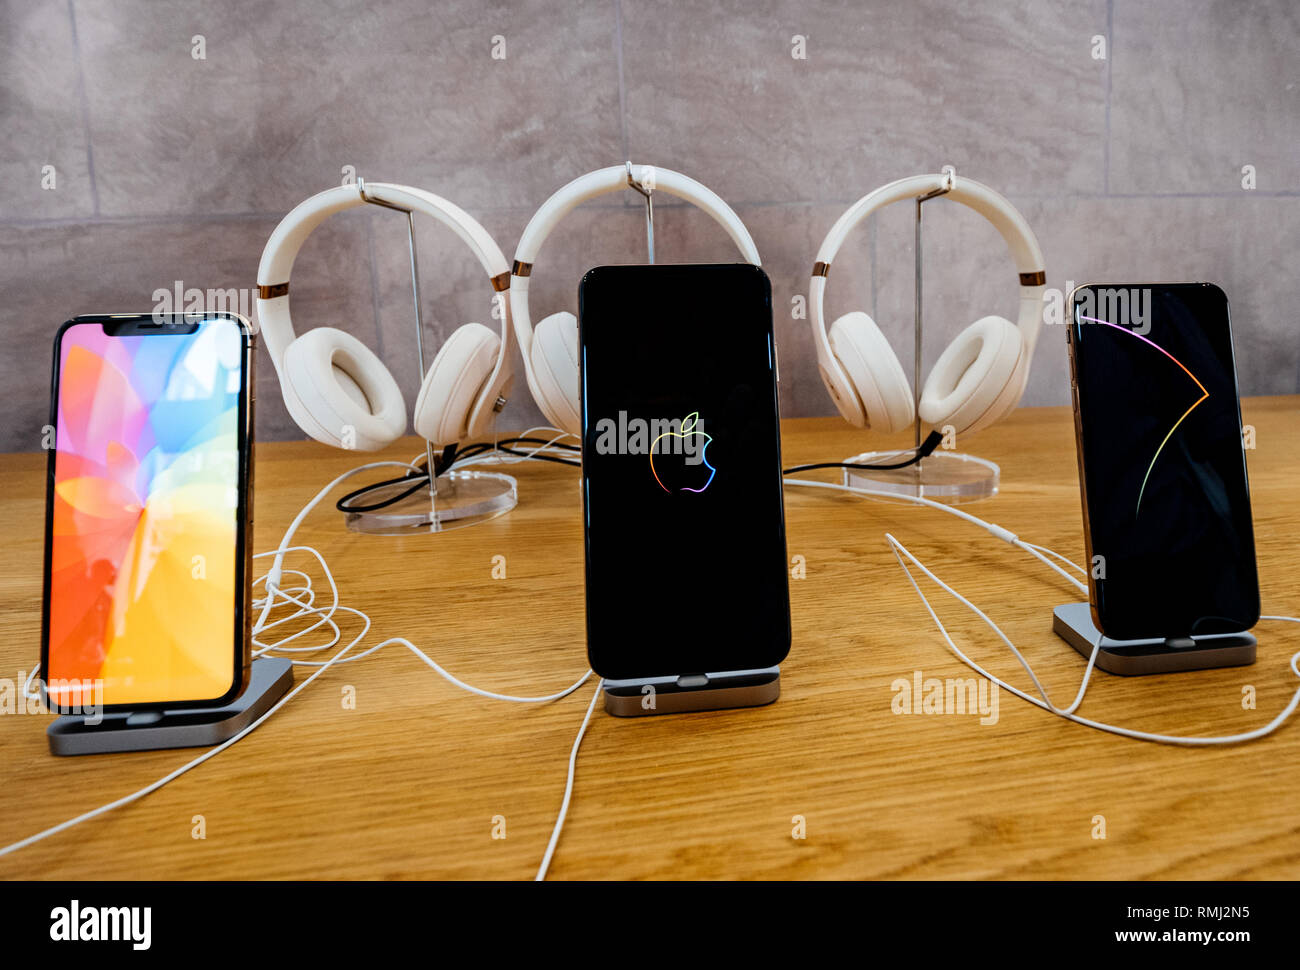 Strasbourg France Sep 21 2018 Apple Store Showcasing As Product Herolatest Iphone Xs And Xs Max With Beats By Dr Dre Headphones In The Background Stock Photo Alamy